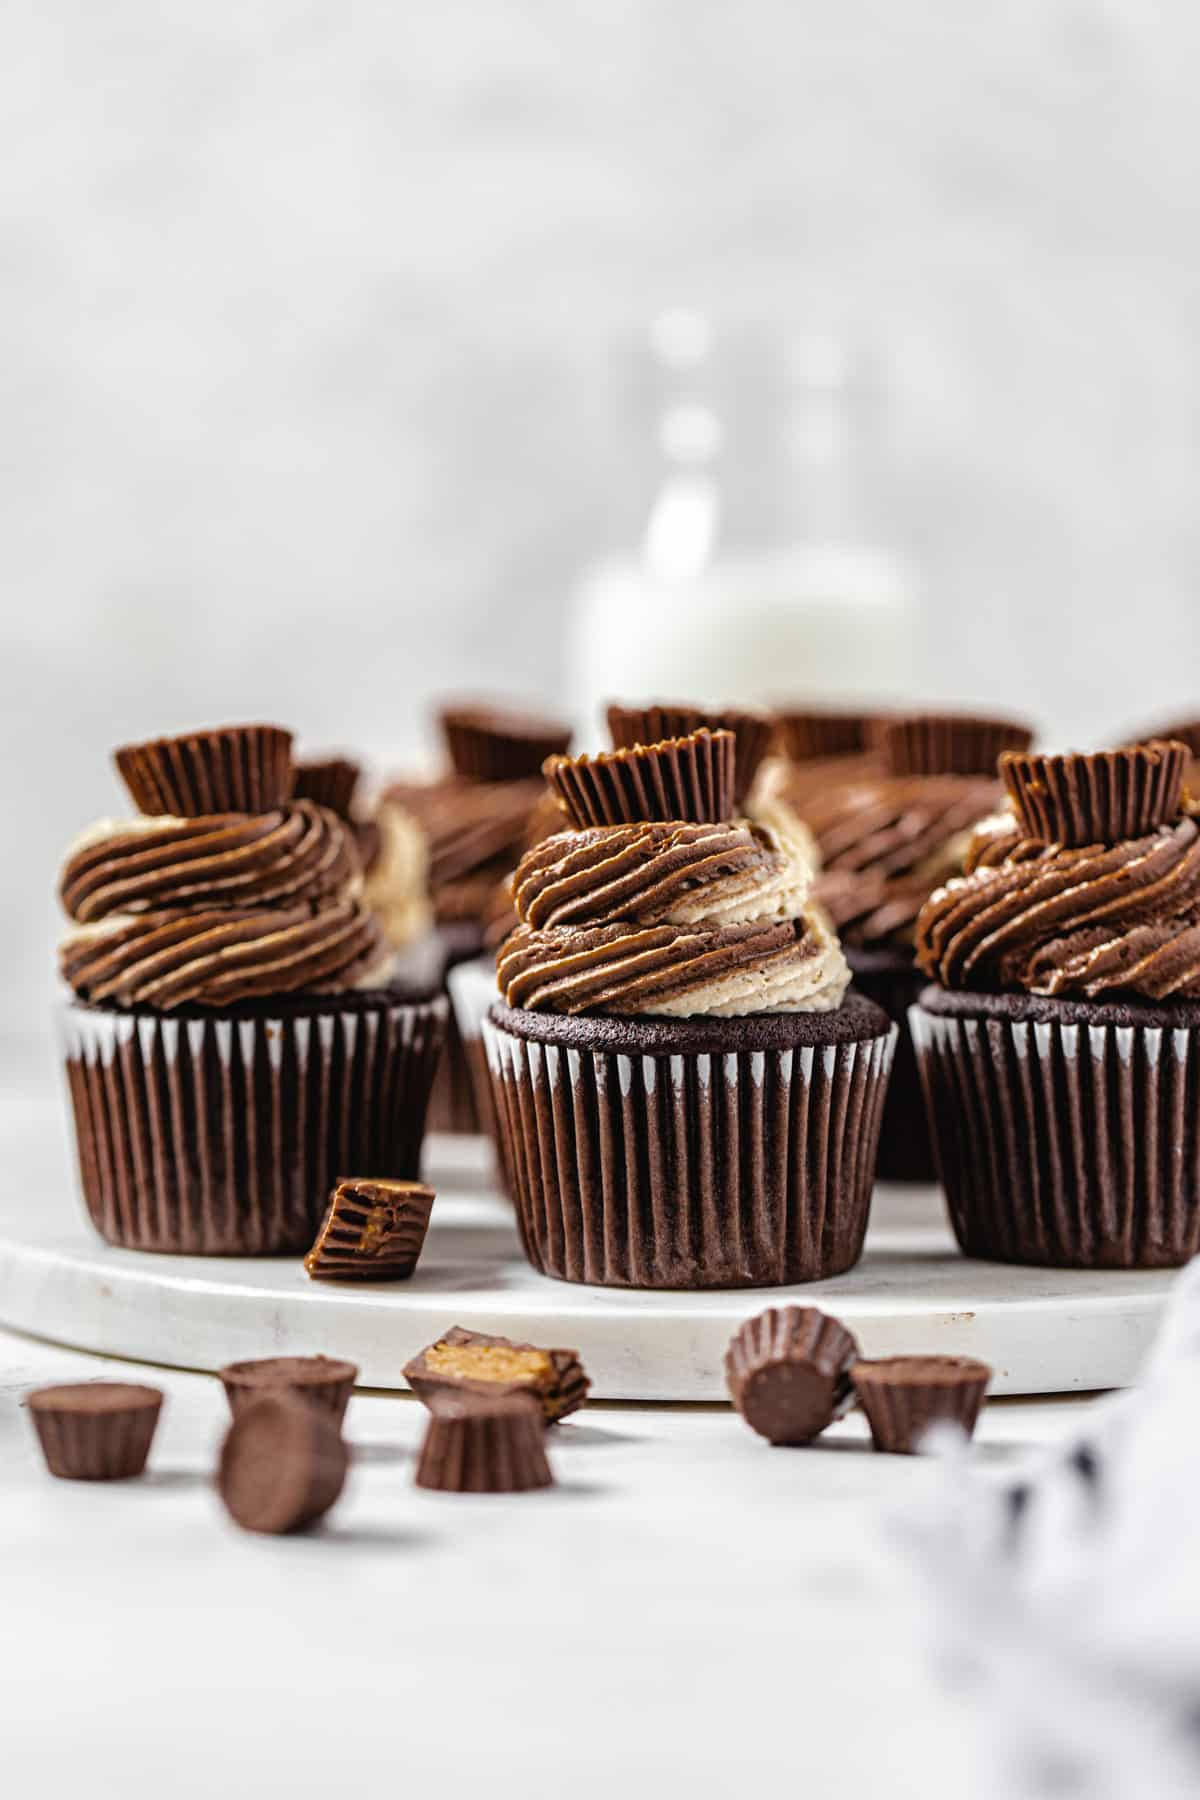 cupcakes on a round marble board with mini Reese's in front and a milk bottle in the background